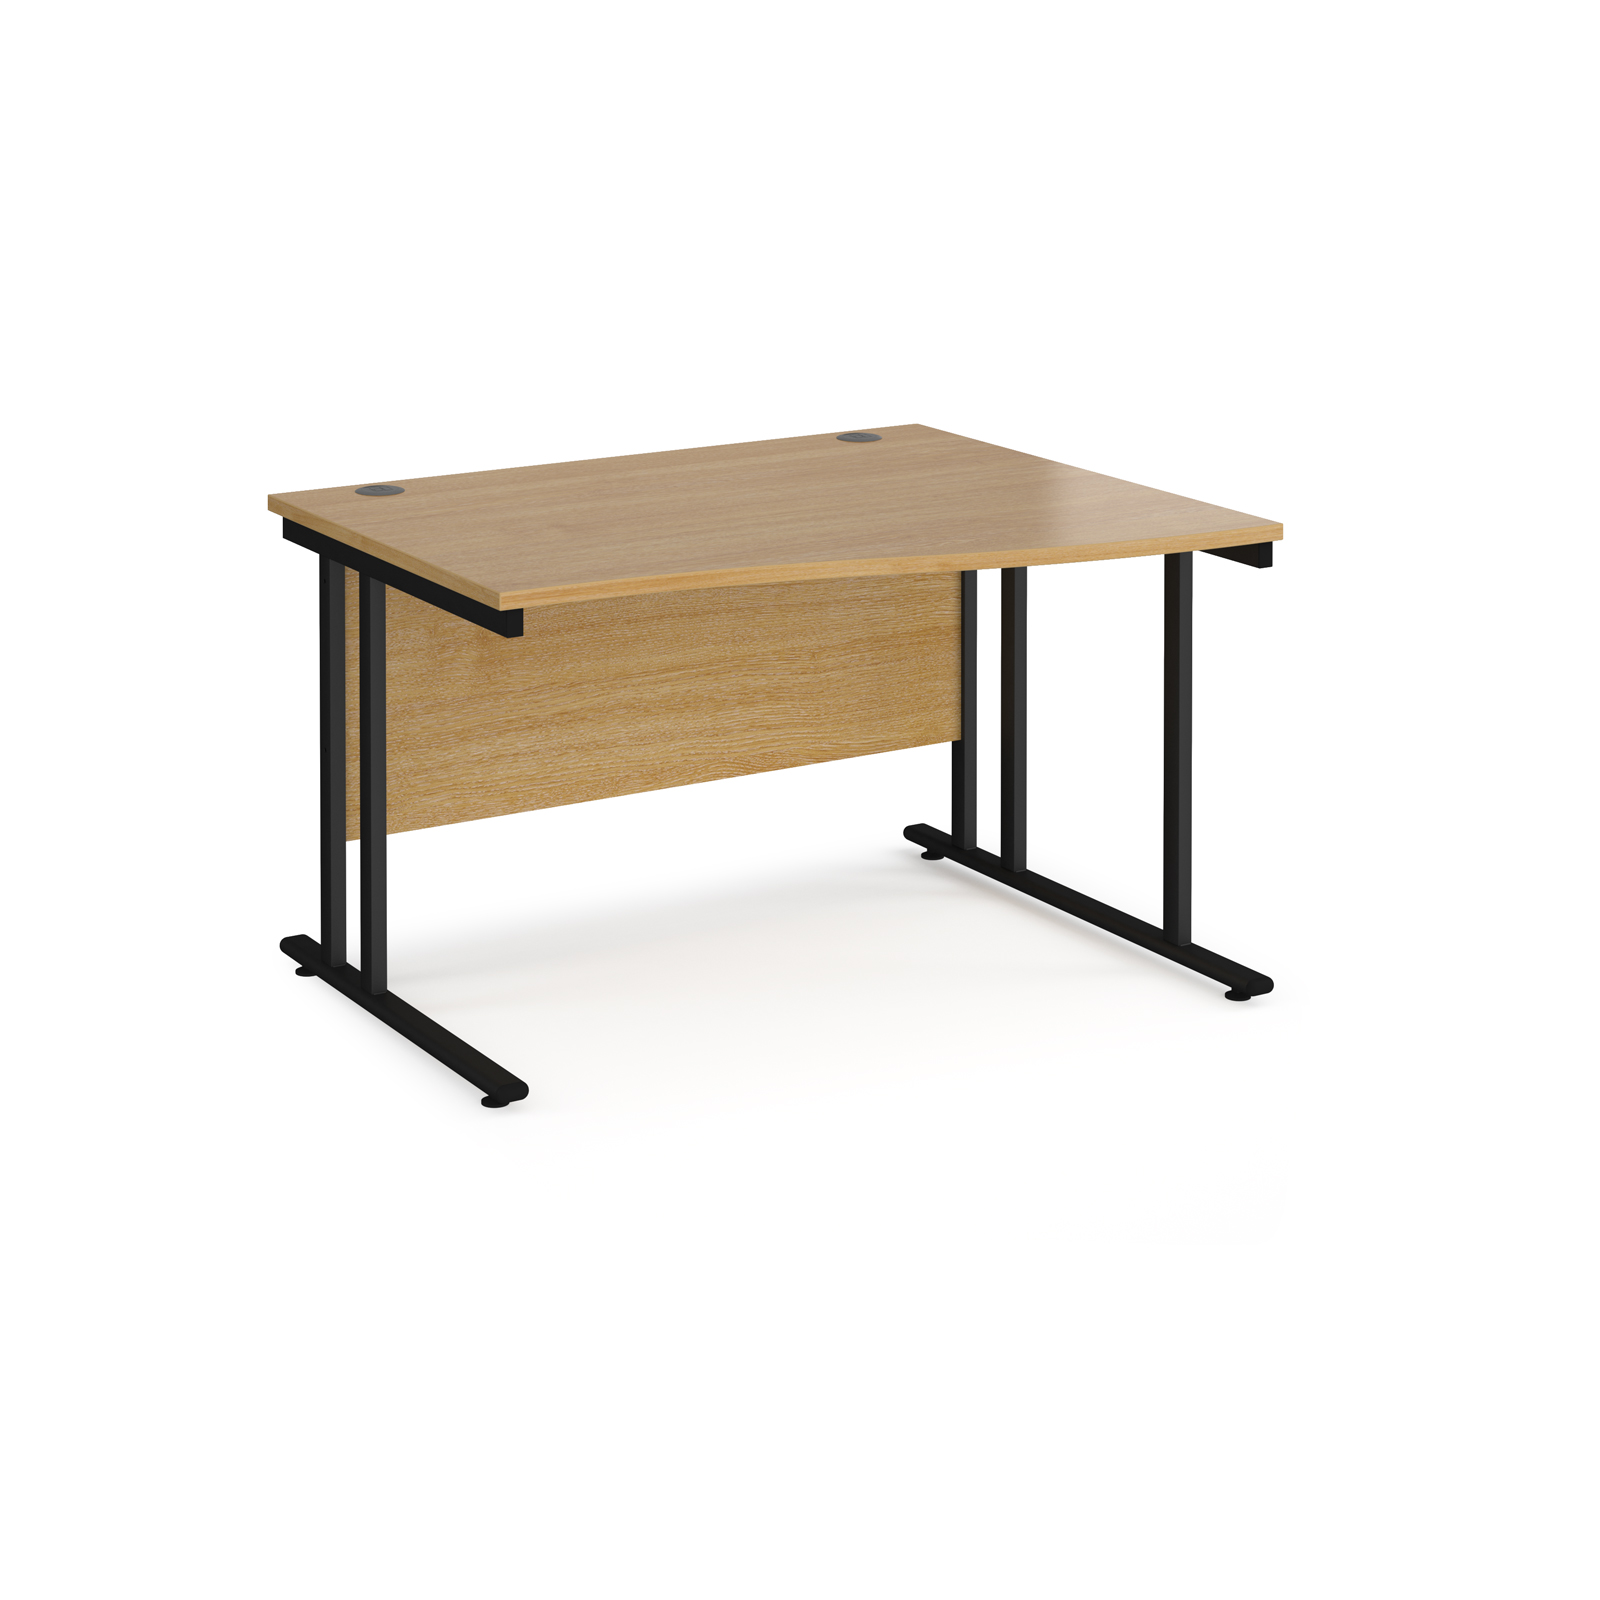 Right Handed Maestro 25 right hand wave desk 1200mm wide - black cantilever leg frame, oak top